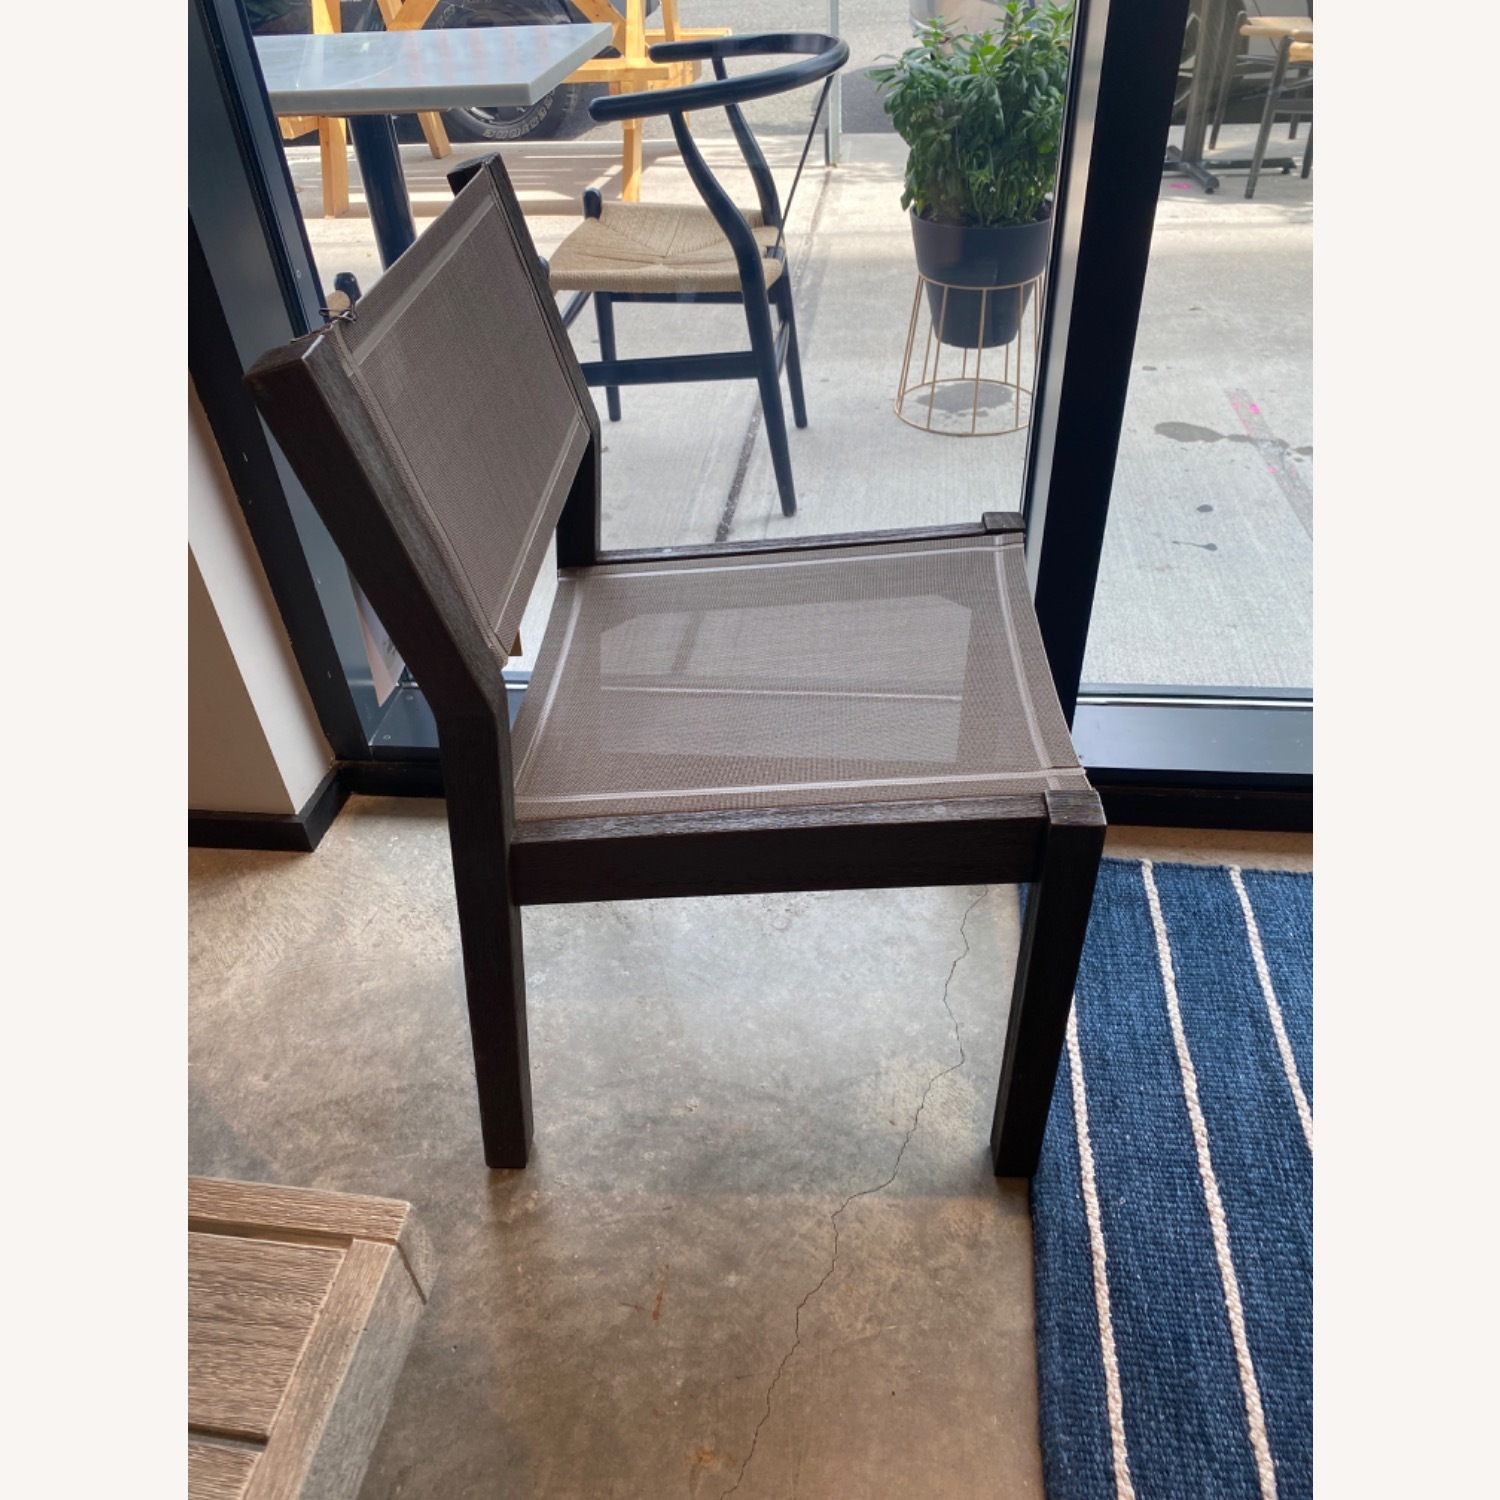 West Elm Portside Textiline Dining Chair - image-3